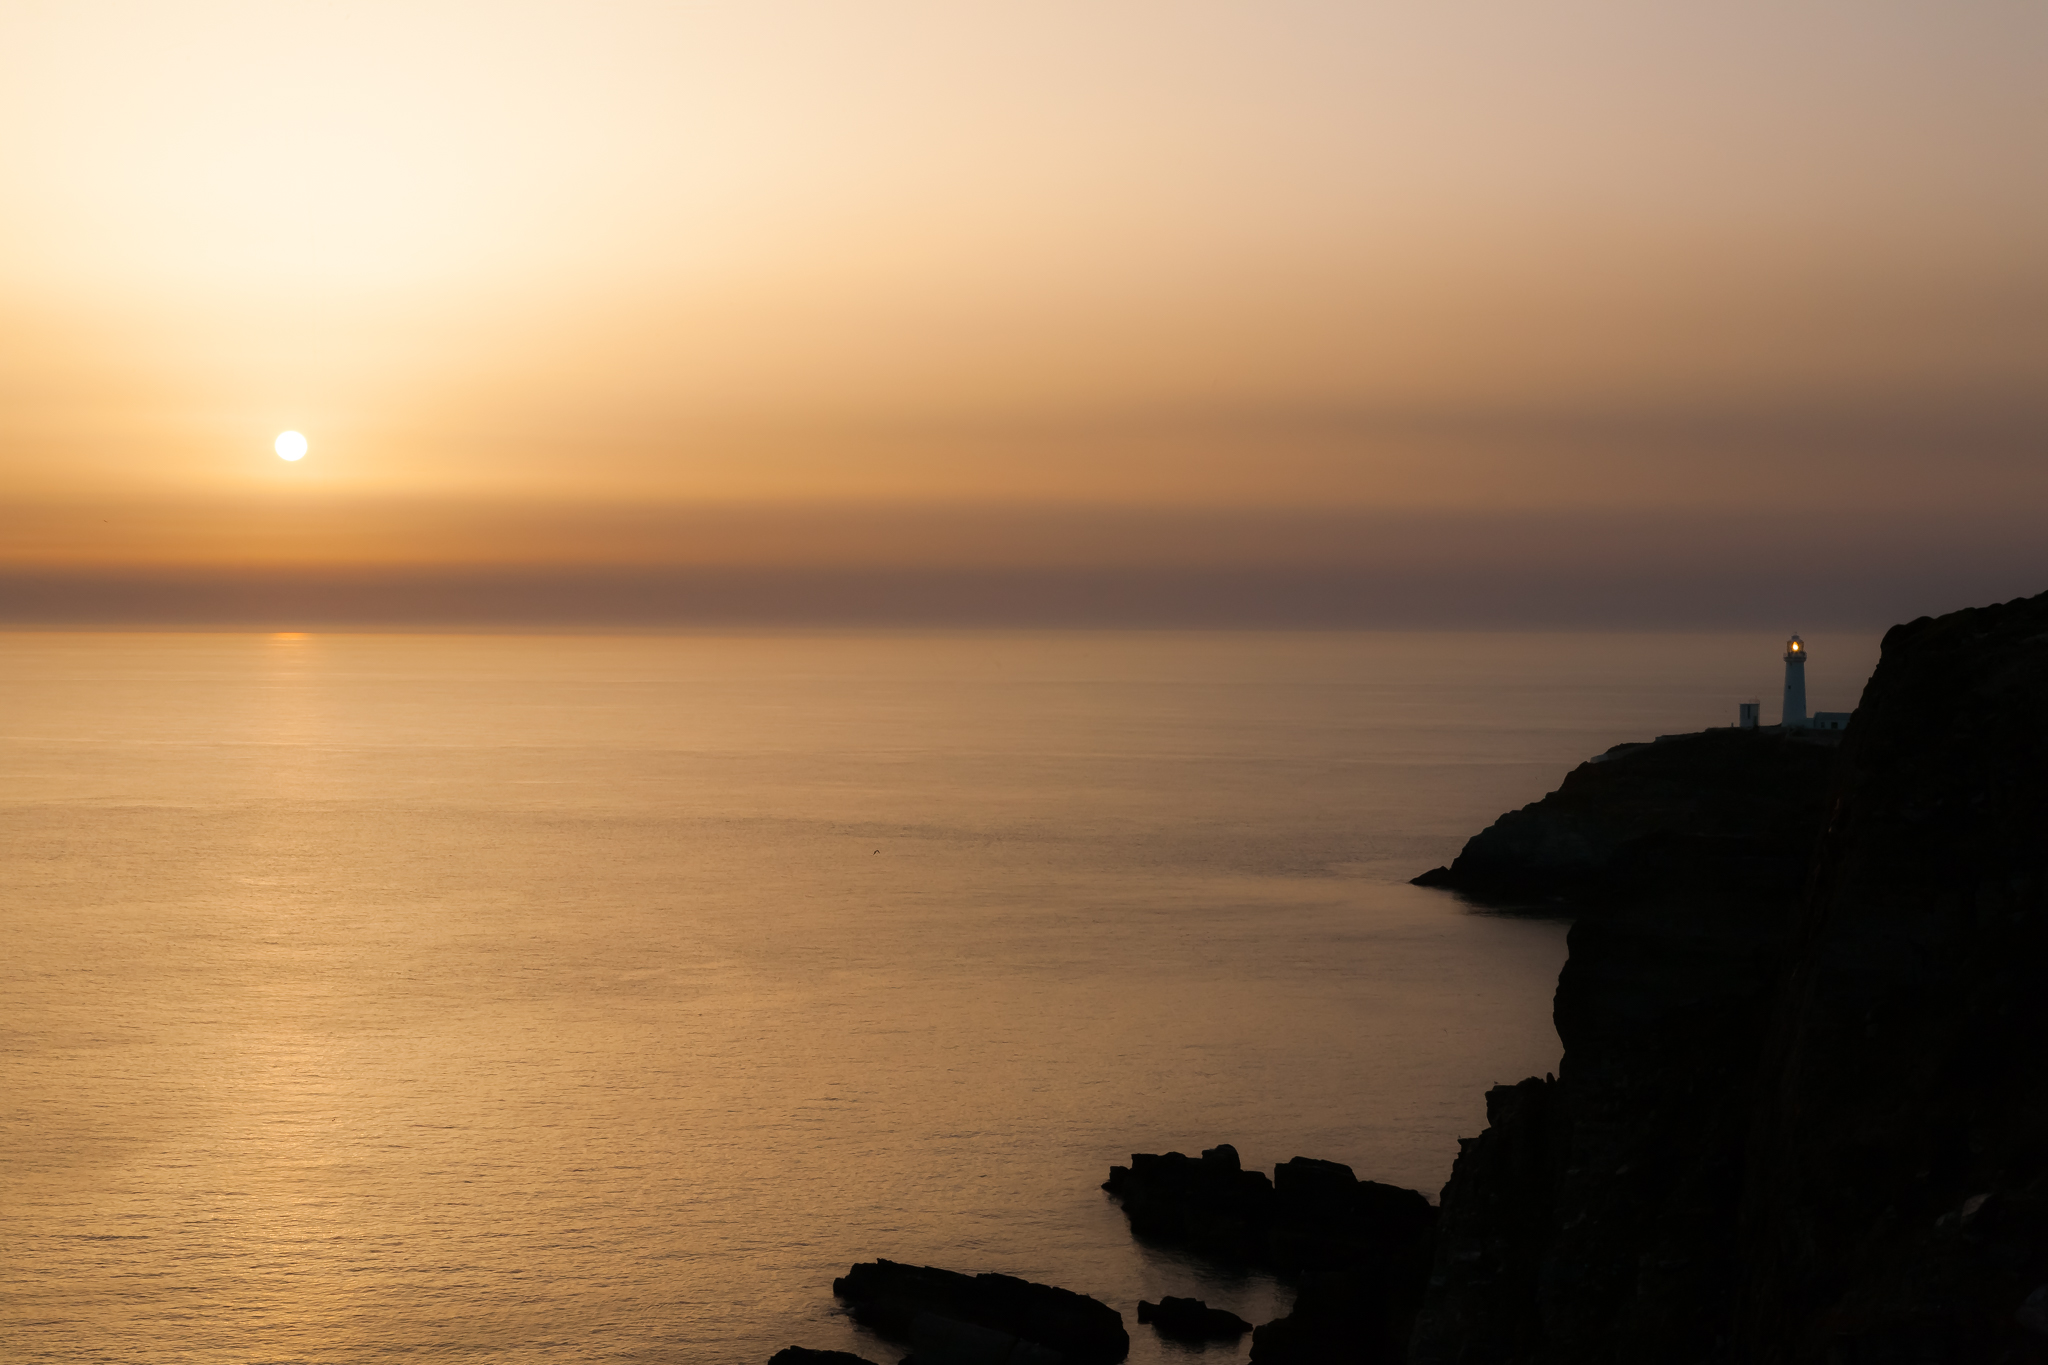 As the sun goes down over the Irish sea off the coast of Angelesey in North Wales,  the lighthouse at South Stack comes on, warning shipping if nearby hazards. The quality of this light attracted me into taking the shot.